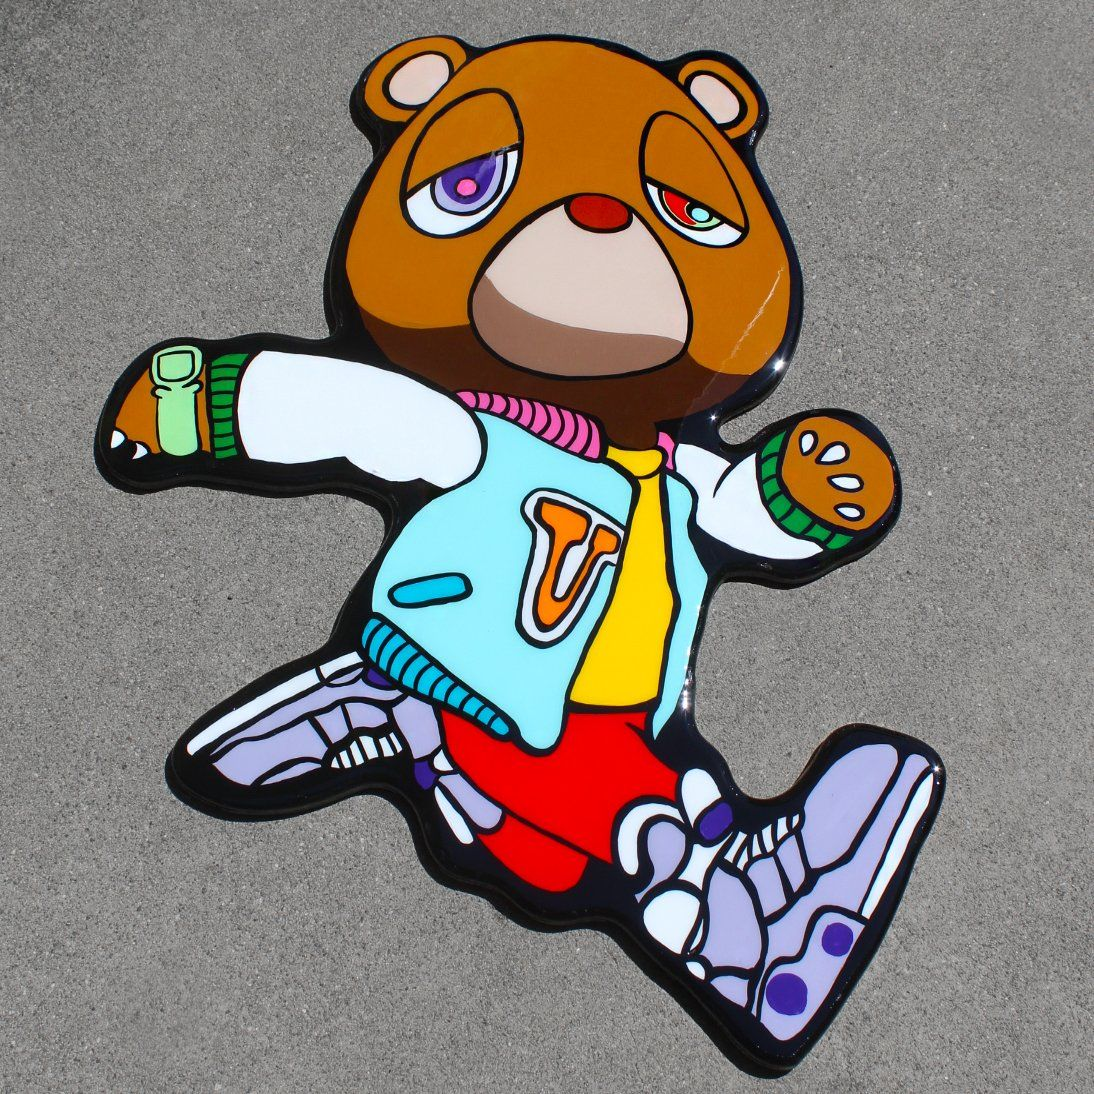 Takashi Flower Inspired Kanye West Graduation Bear Hanging Wall Art Graffiti Cartoons Kanye West Graduation Bear Bear Art